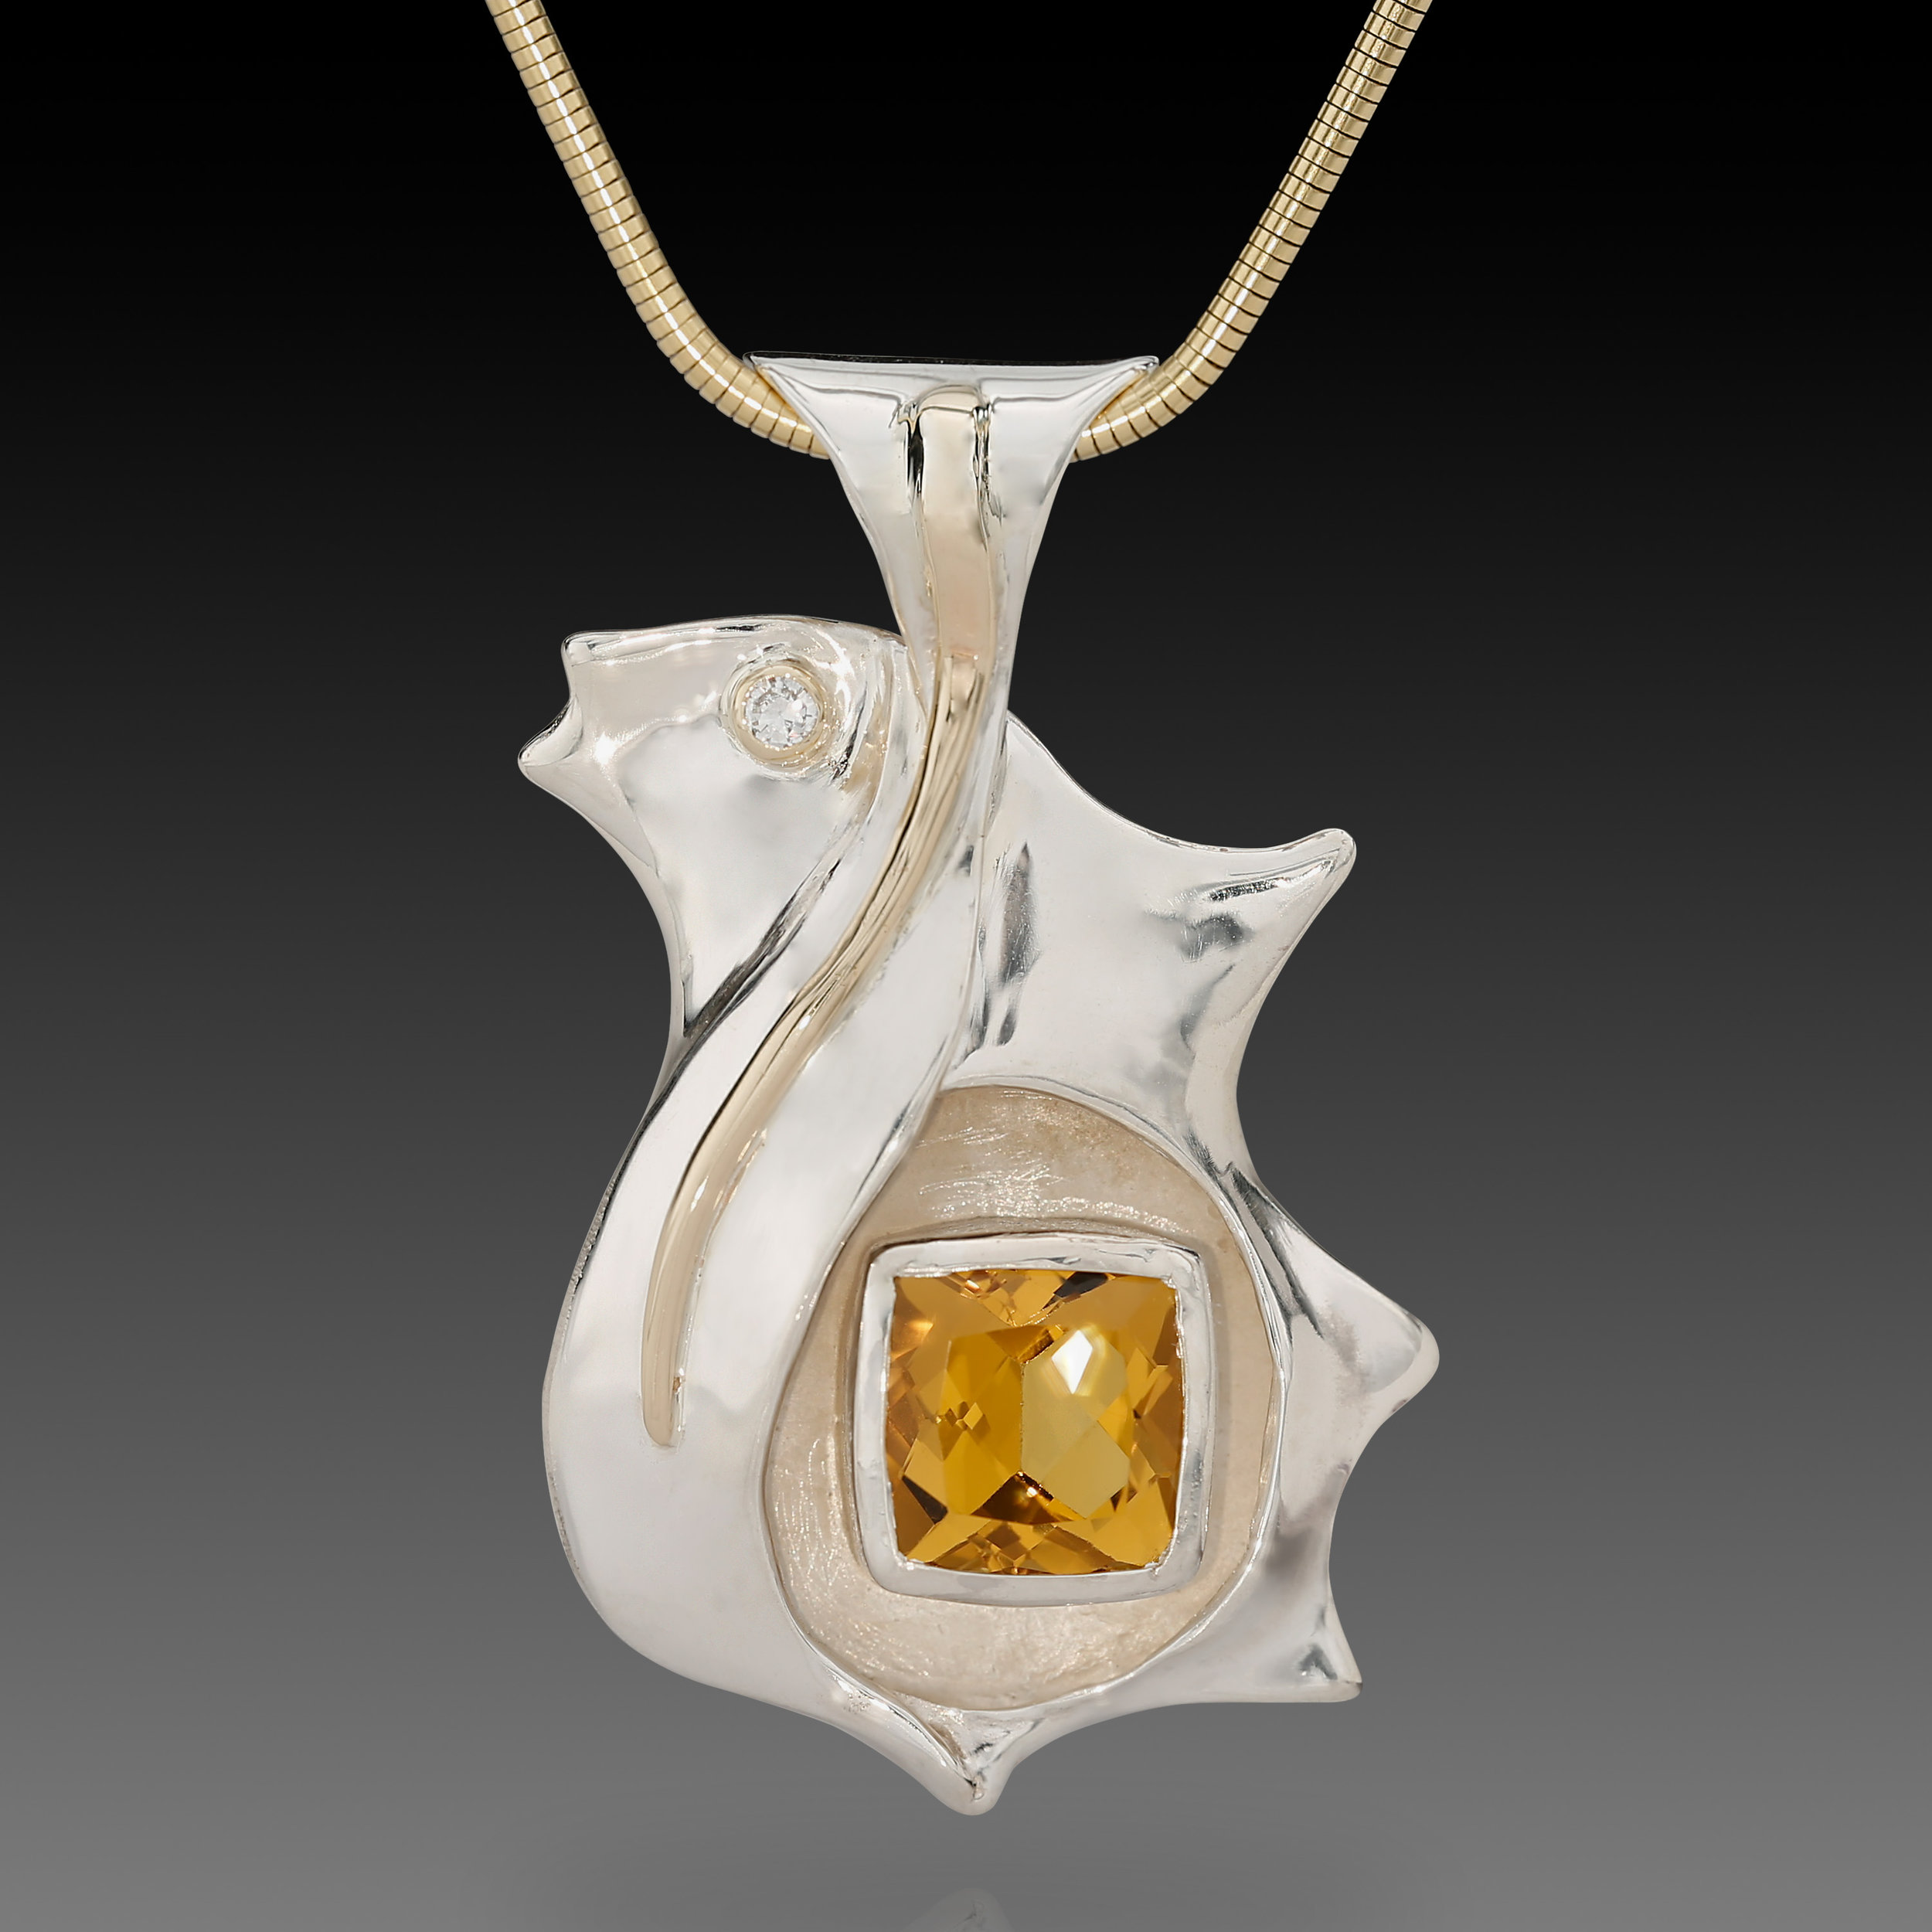 Emerging Jewelry Artist 22 Years of Age or Younger